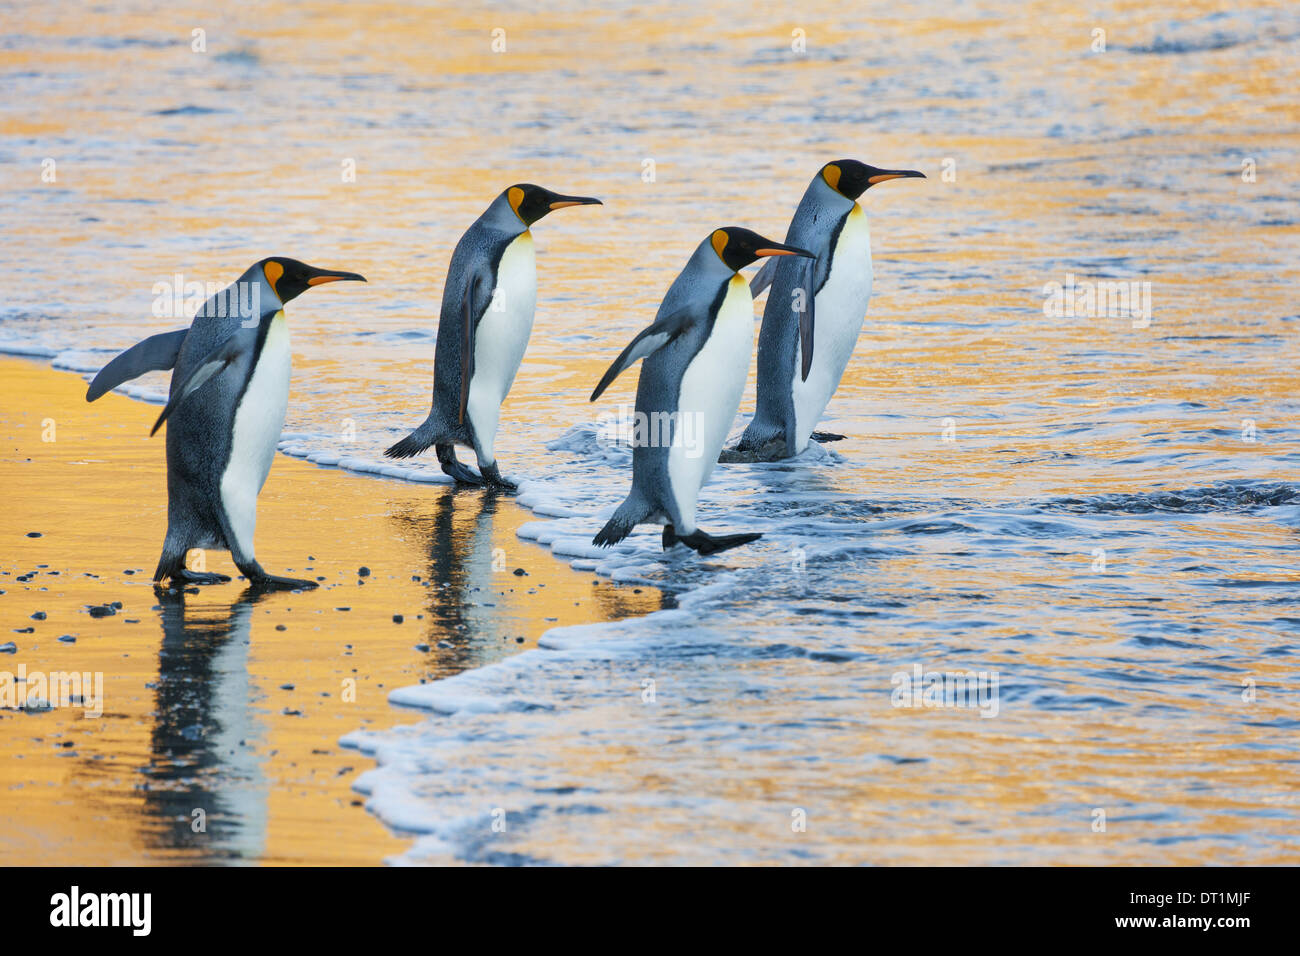 A group of four adult King penguins at the water's edge walking into the water at sunrise Reflected light - Stock Image